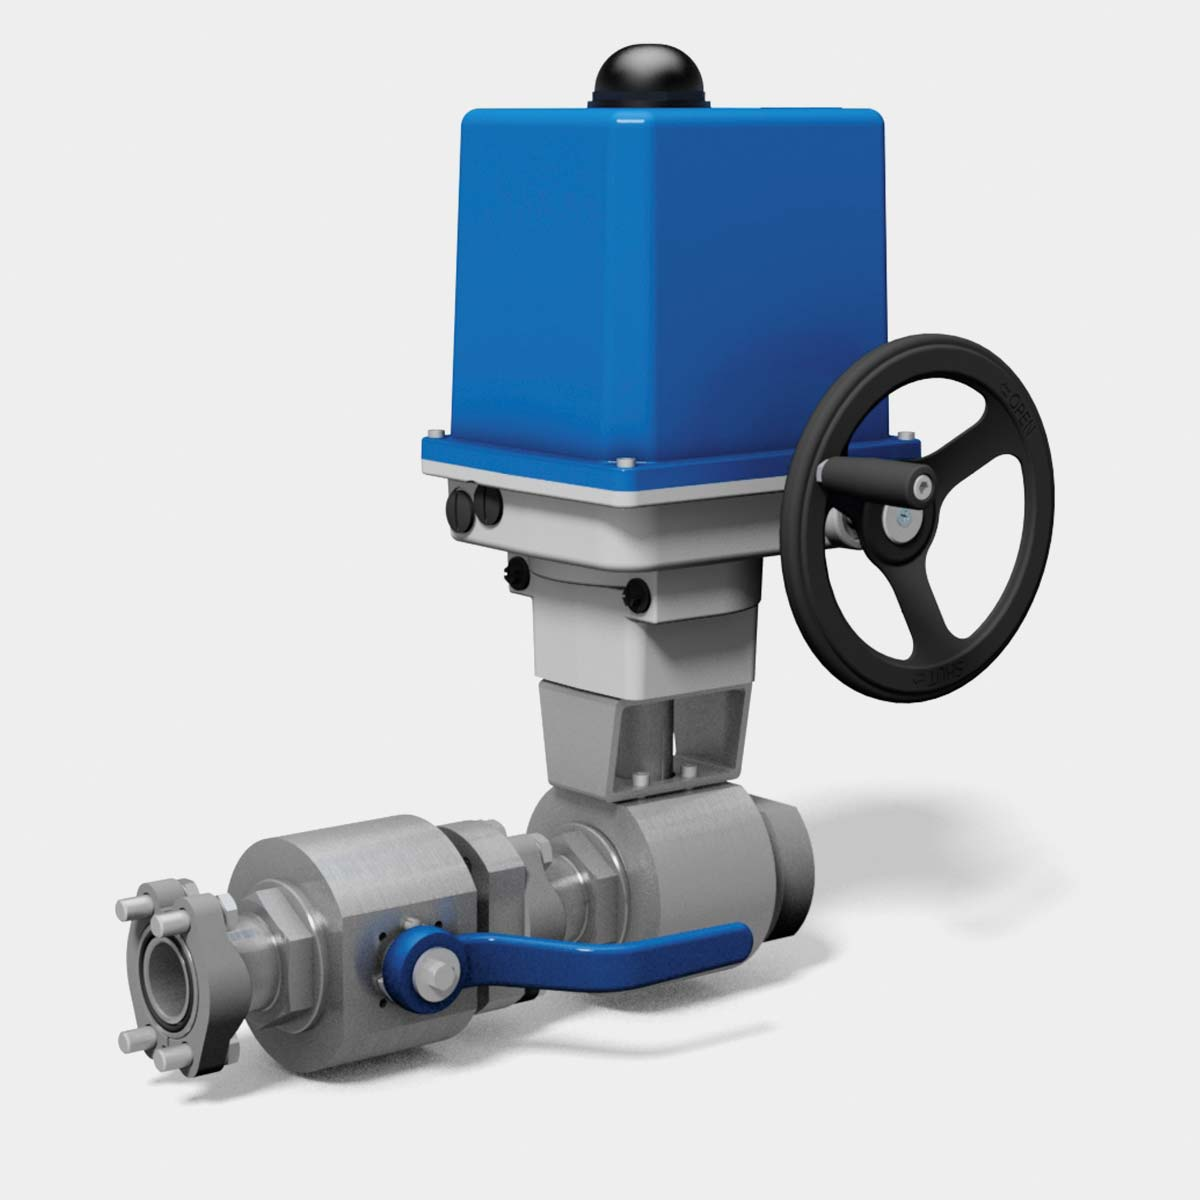 MHA ZENTGRAF Zone valve for fire protection systems